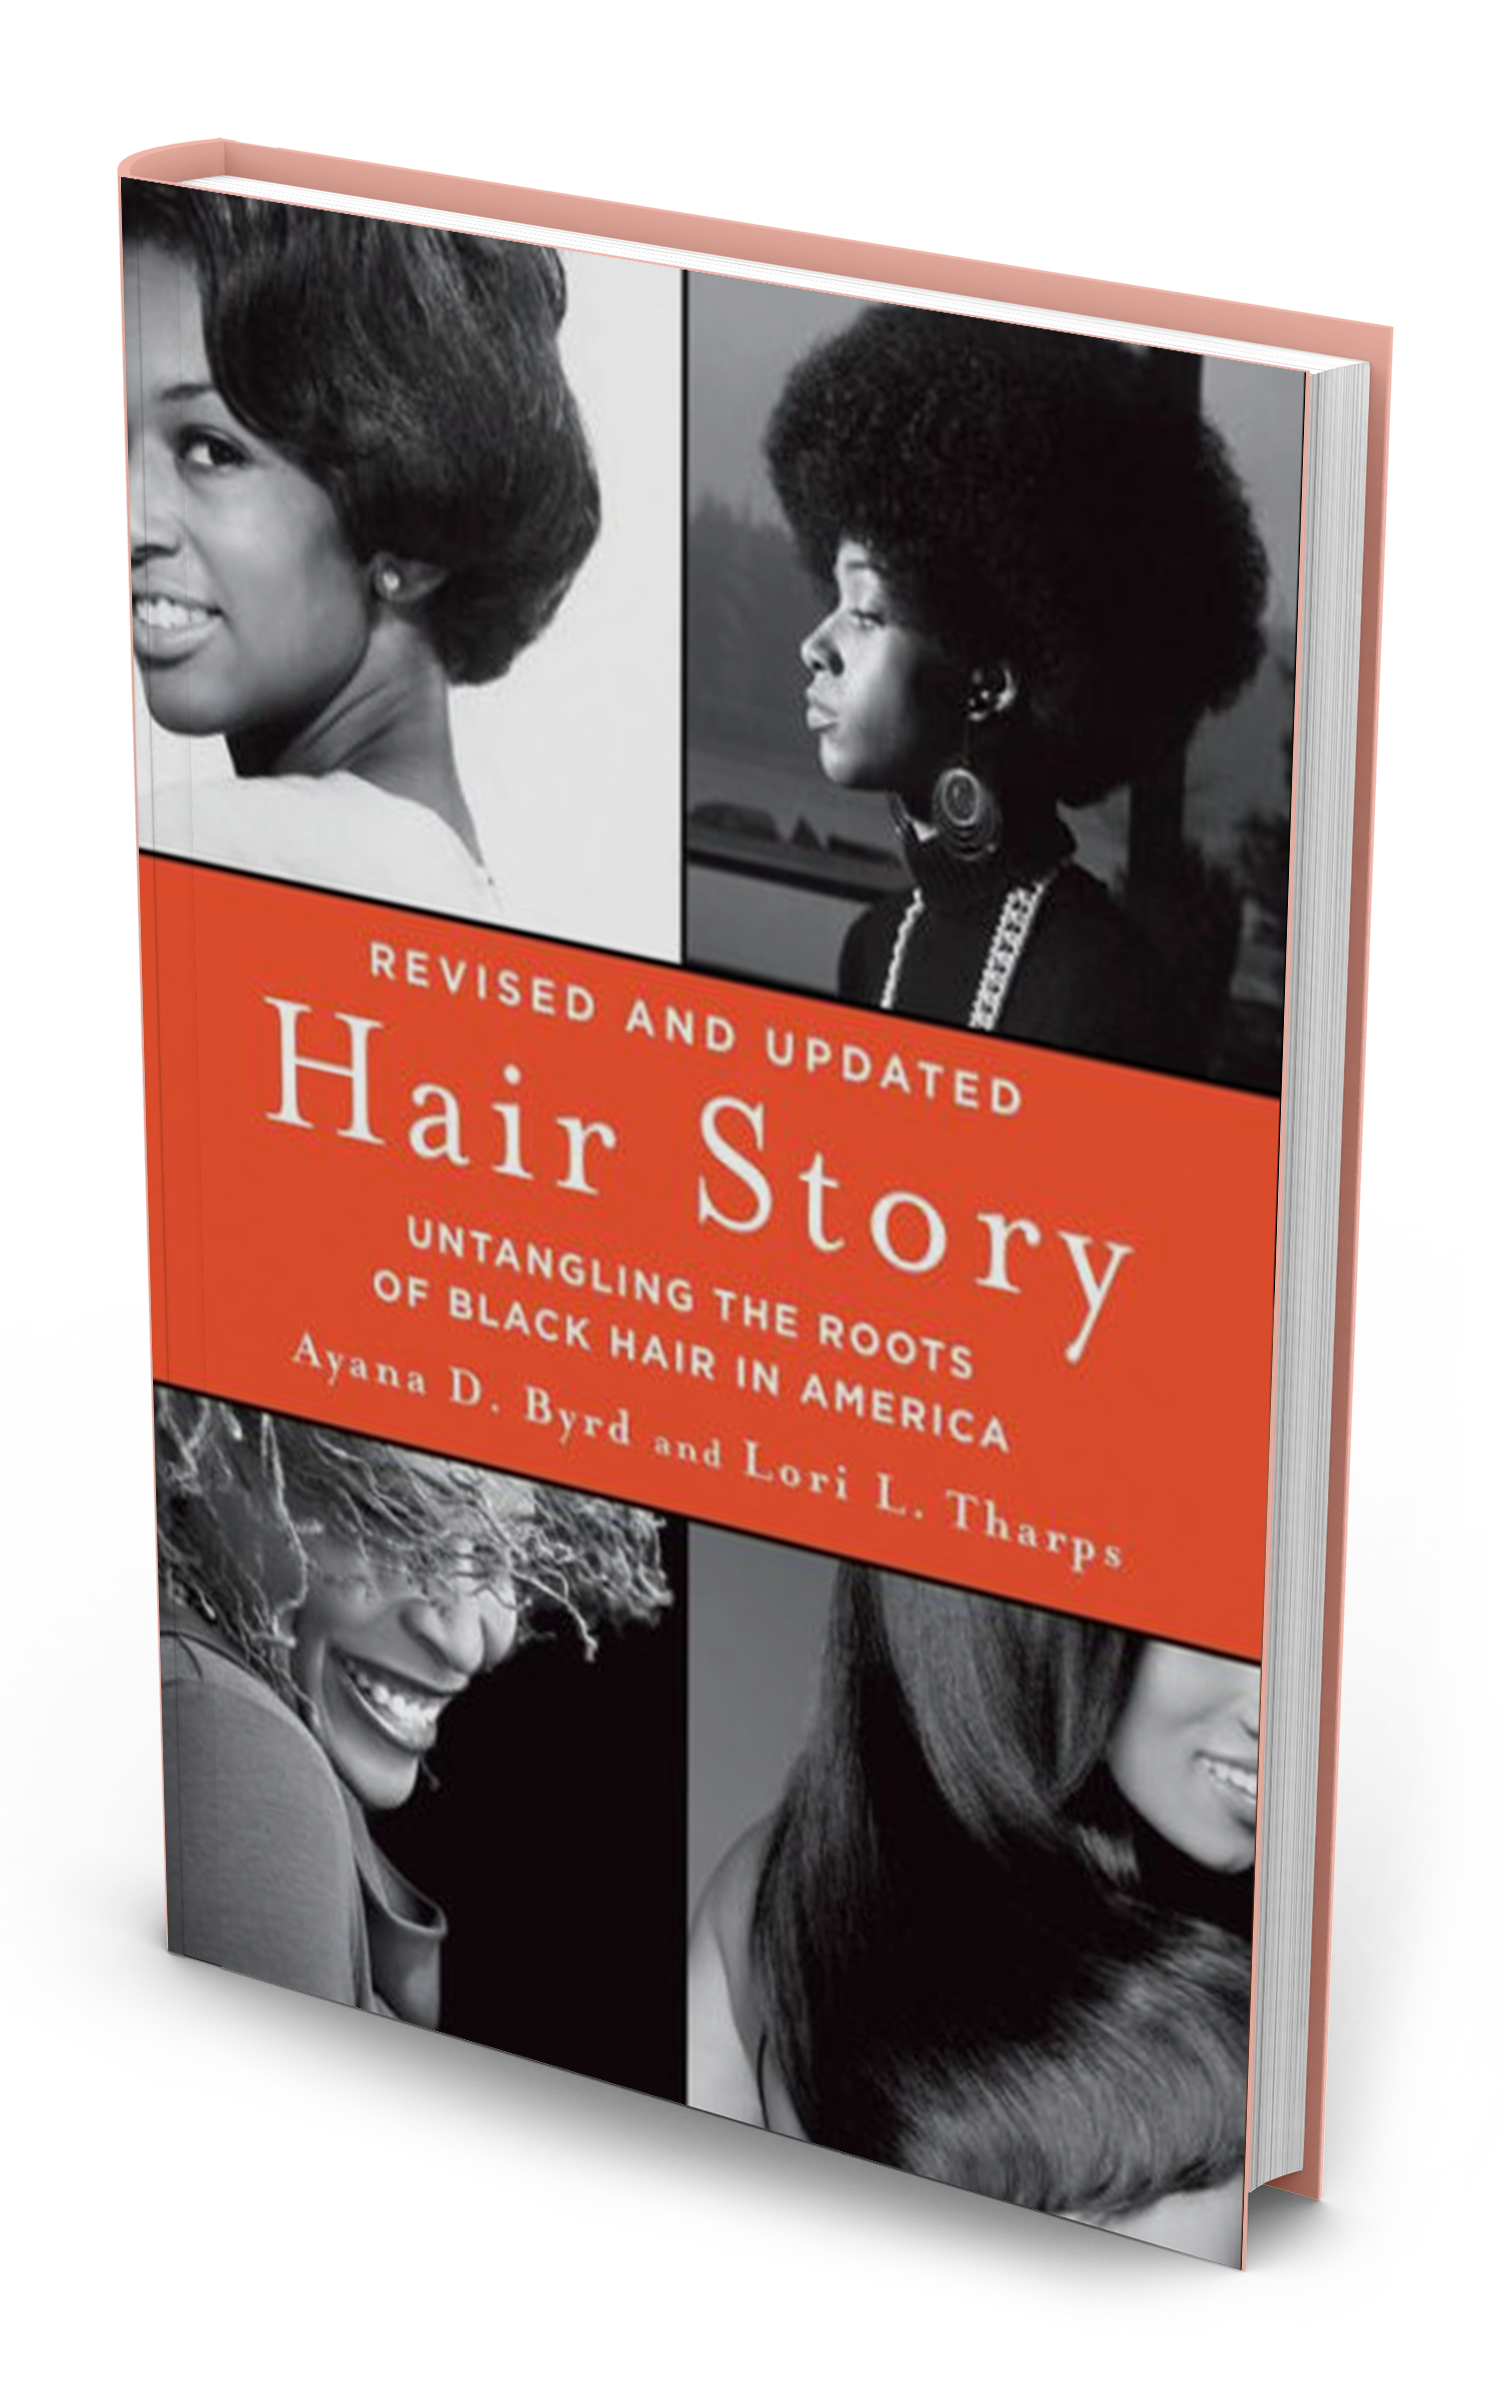 hairstory-cover1